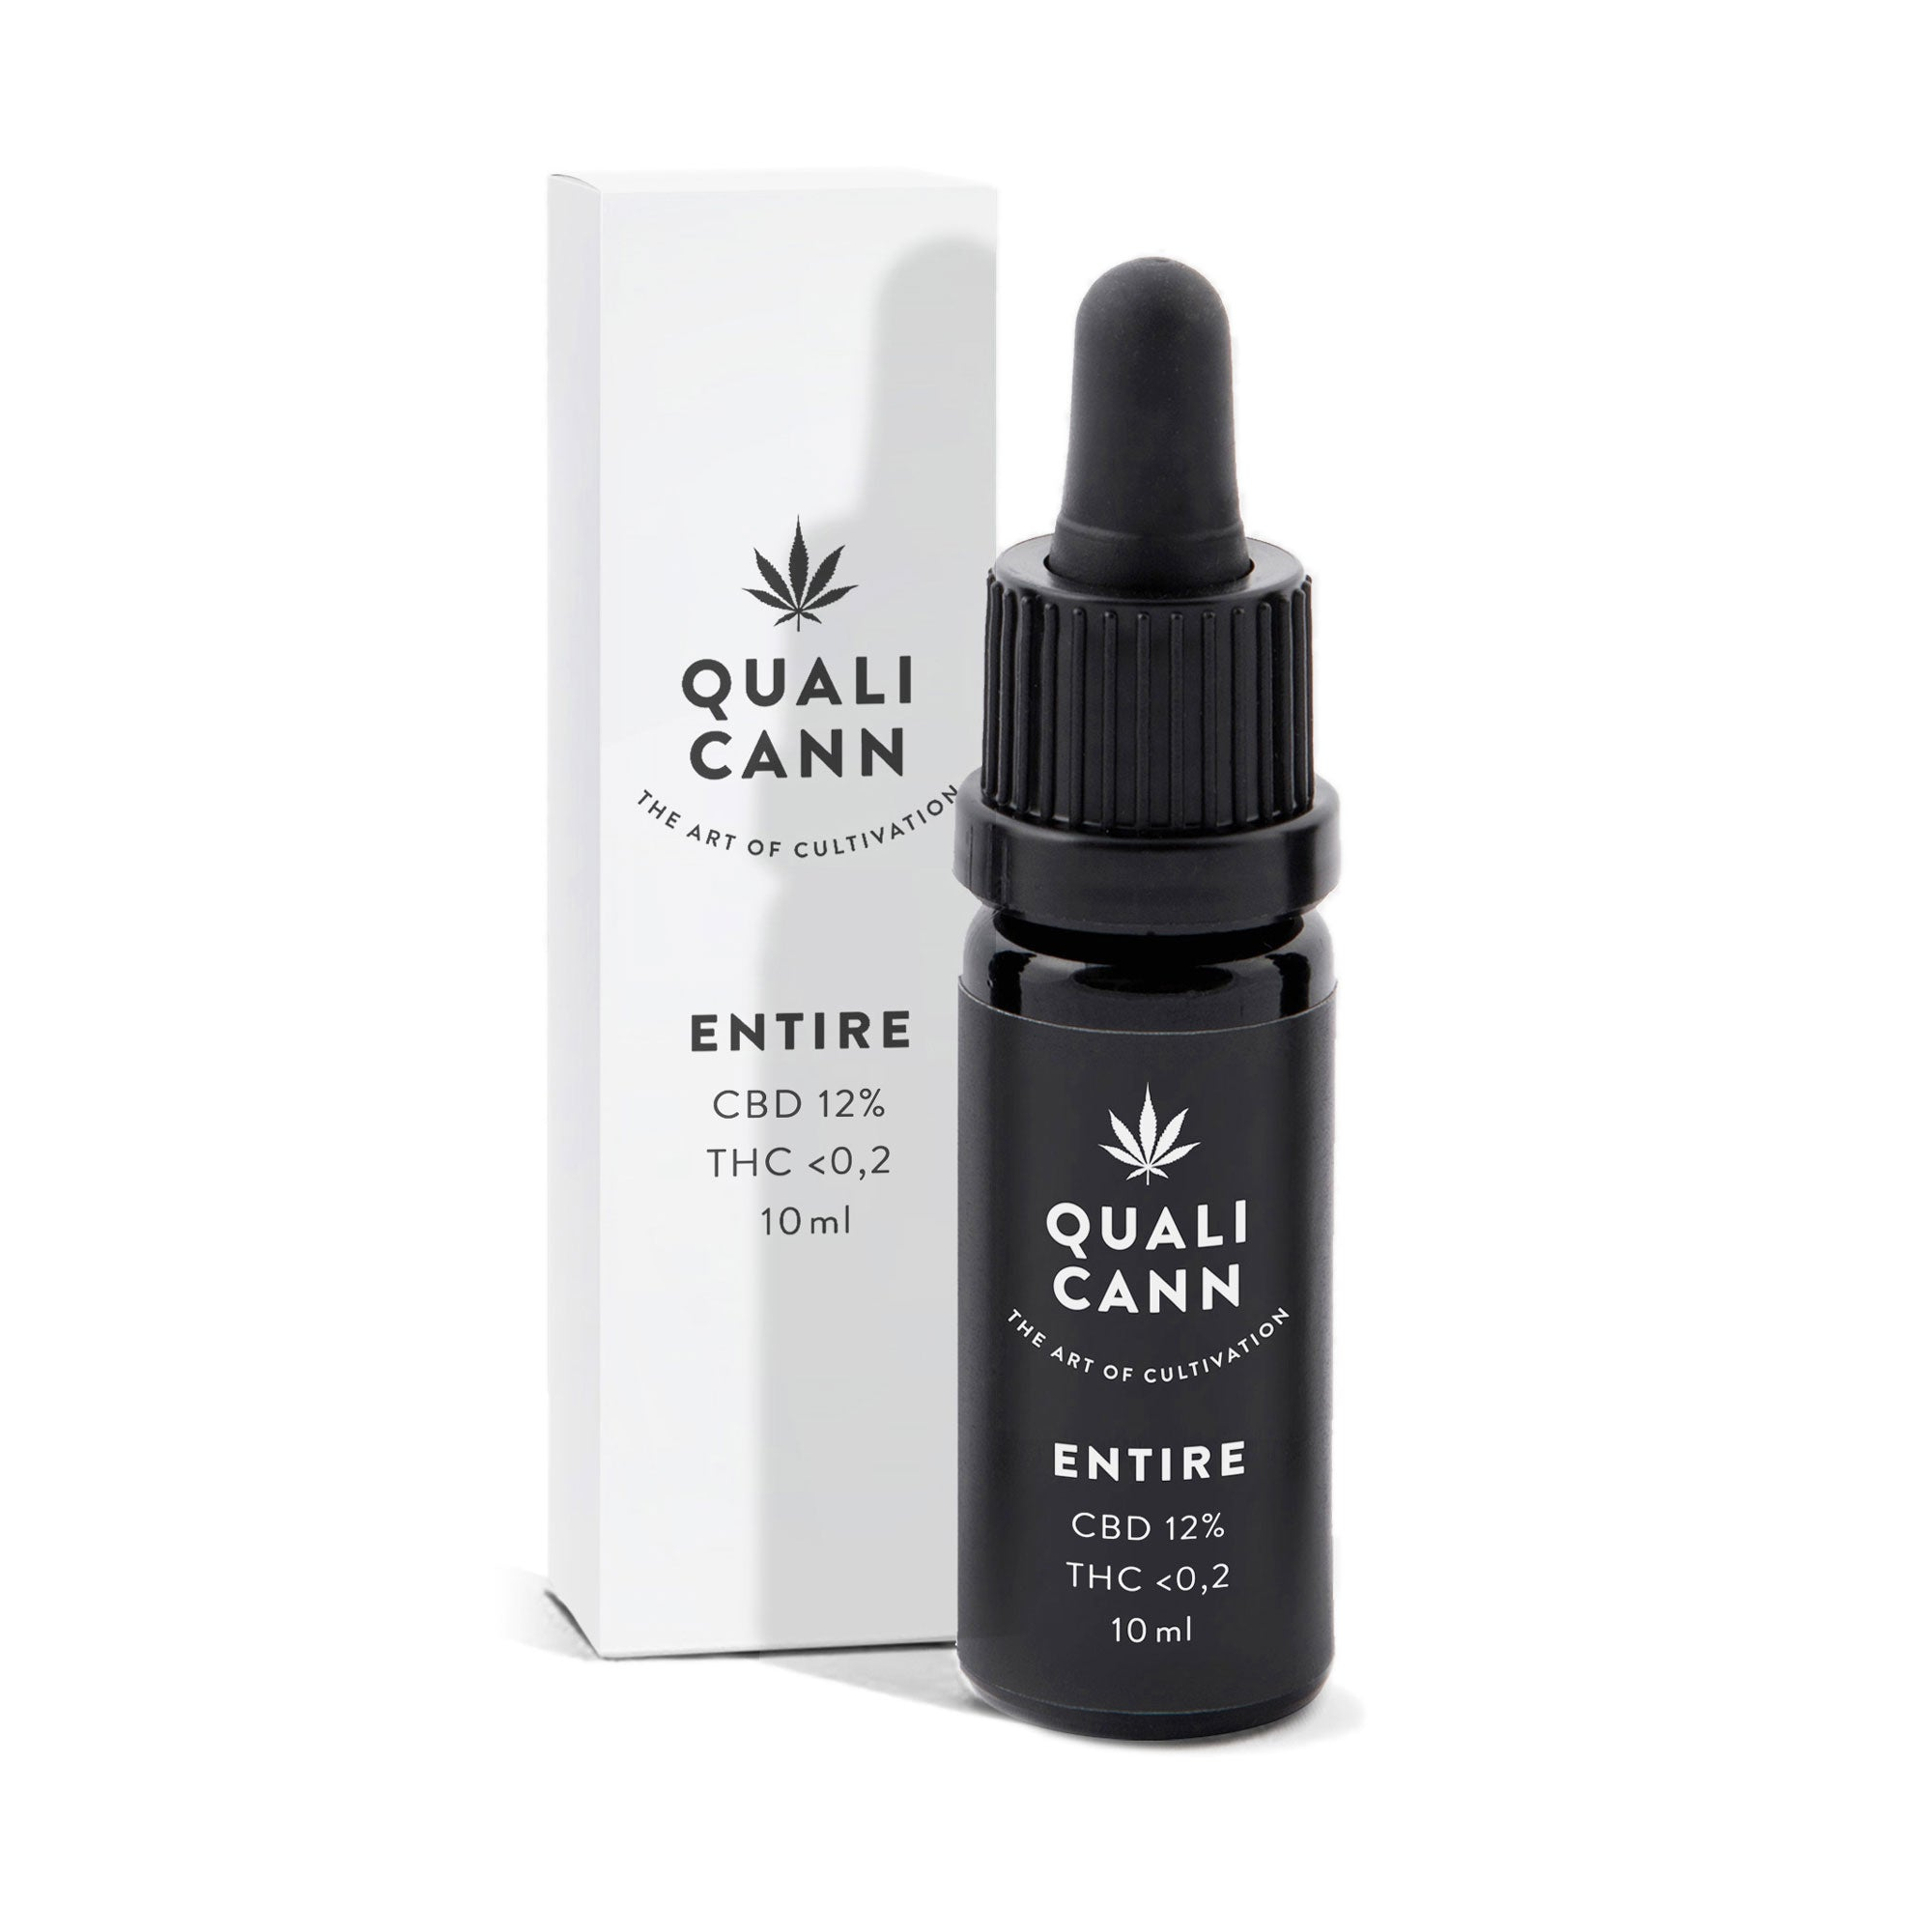 Entire 12% Full-Spectrum CBD Oil (1200mg) | Qualicann | CBD oil | uWeed | Swiss CBD Shop | Buy Online Shop CBD Switzerland